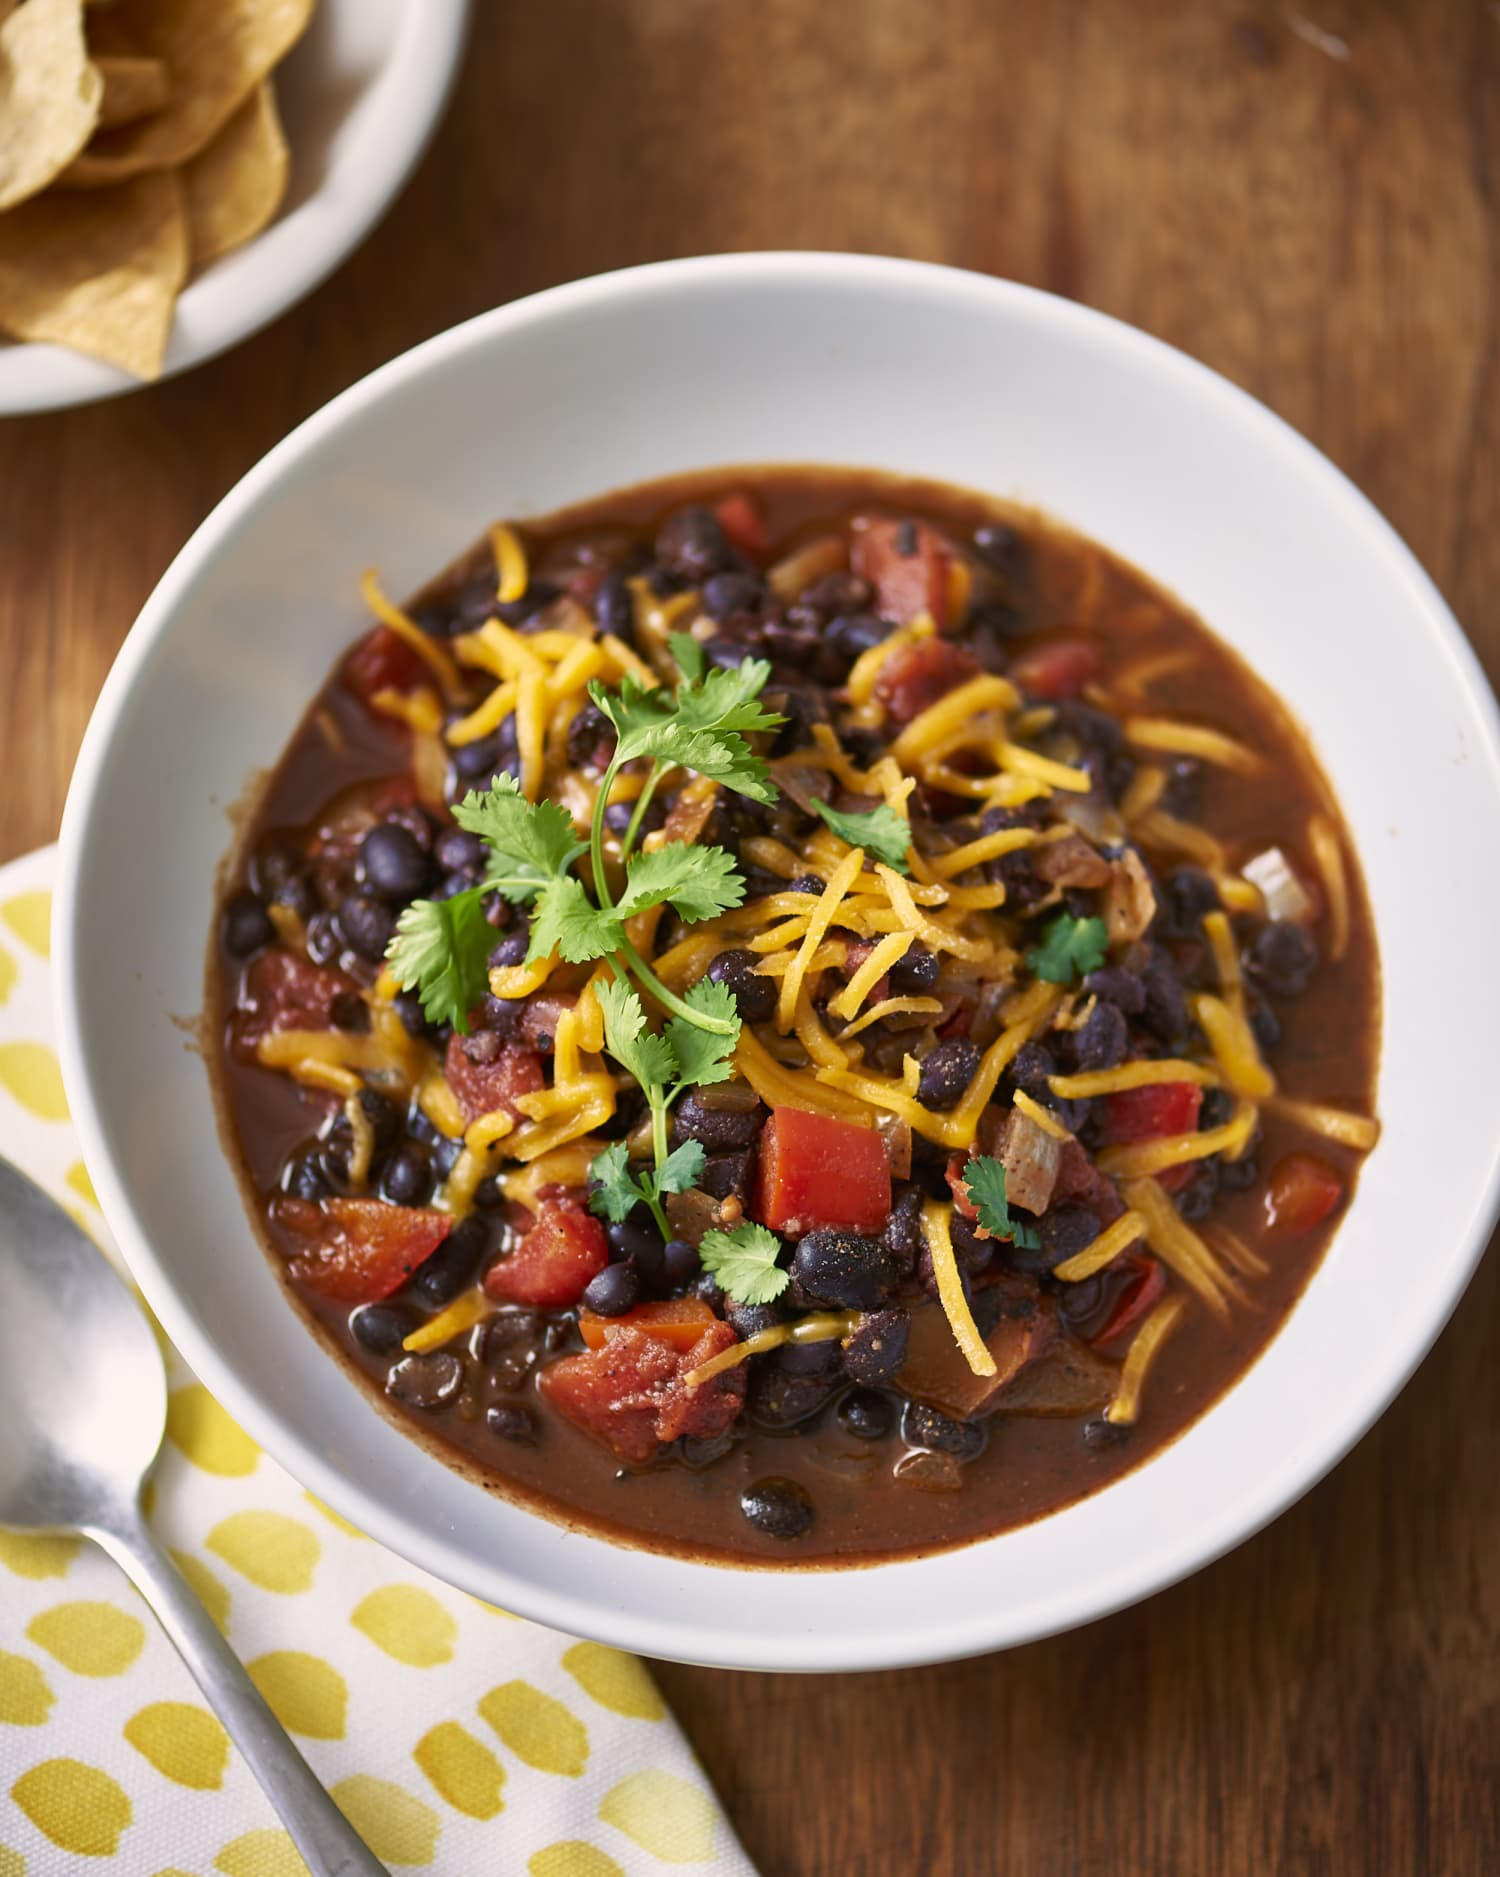 For a More Flavorful Chili, Try Adding Cocoa Powder